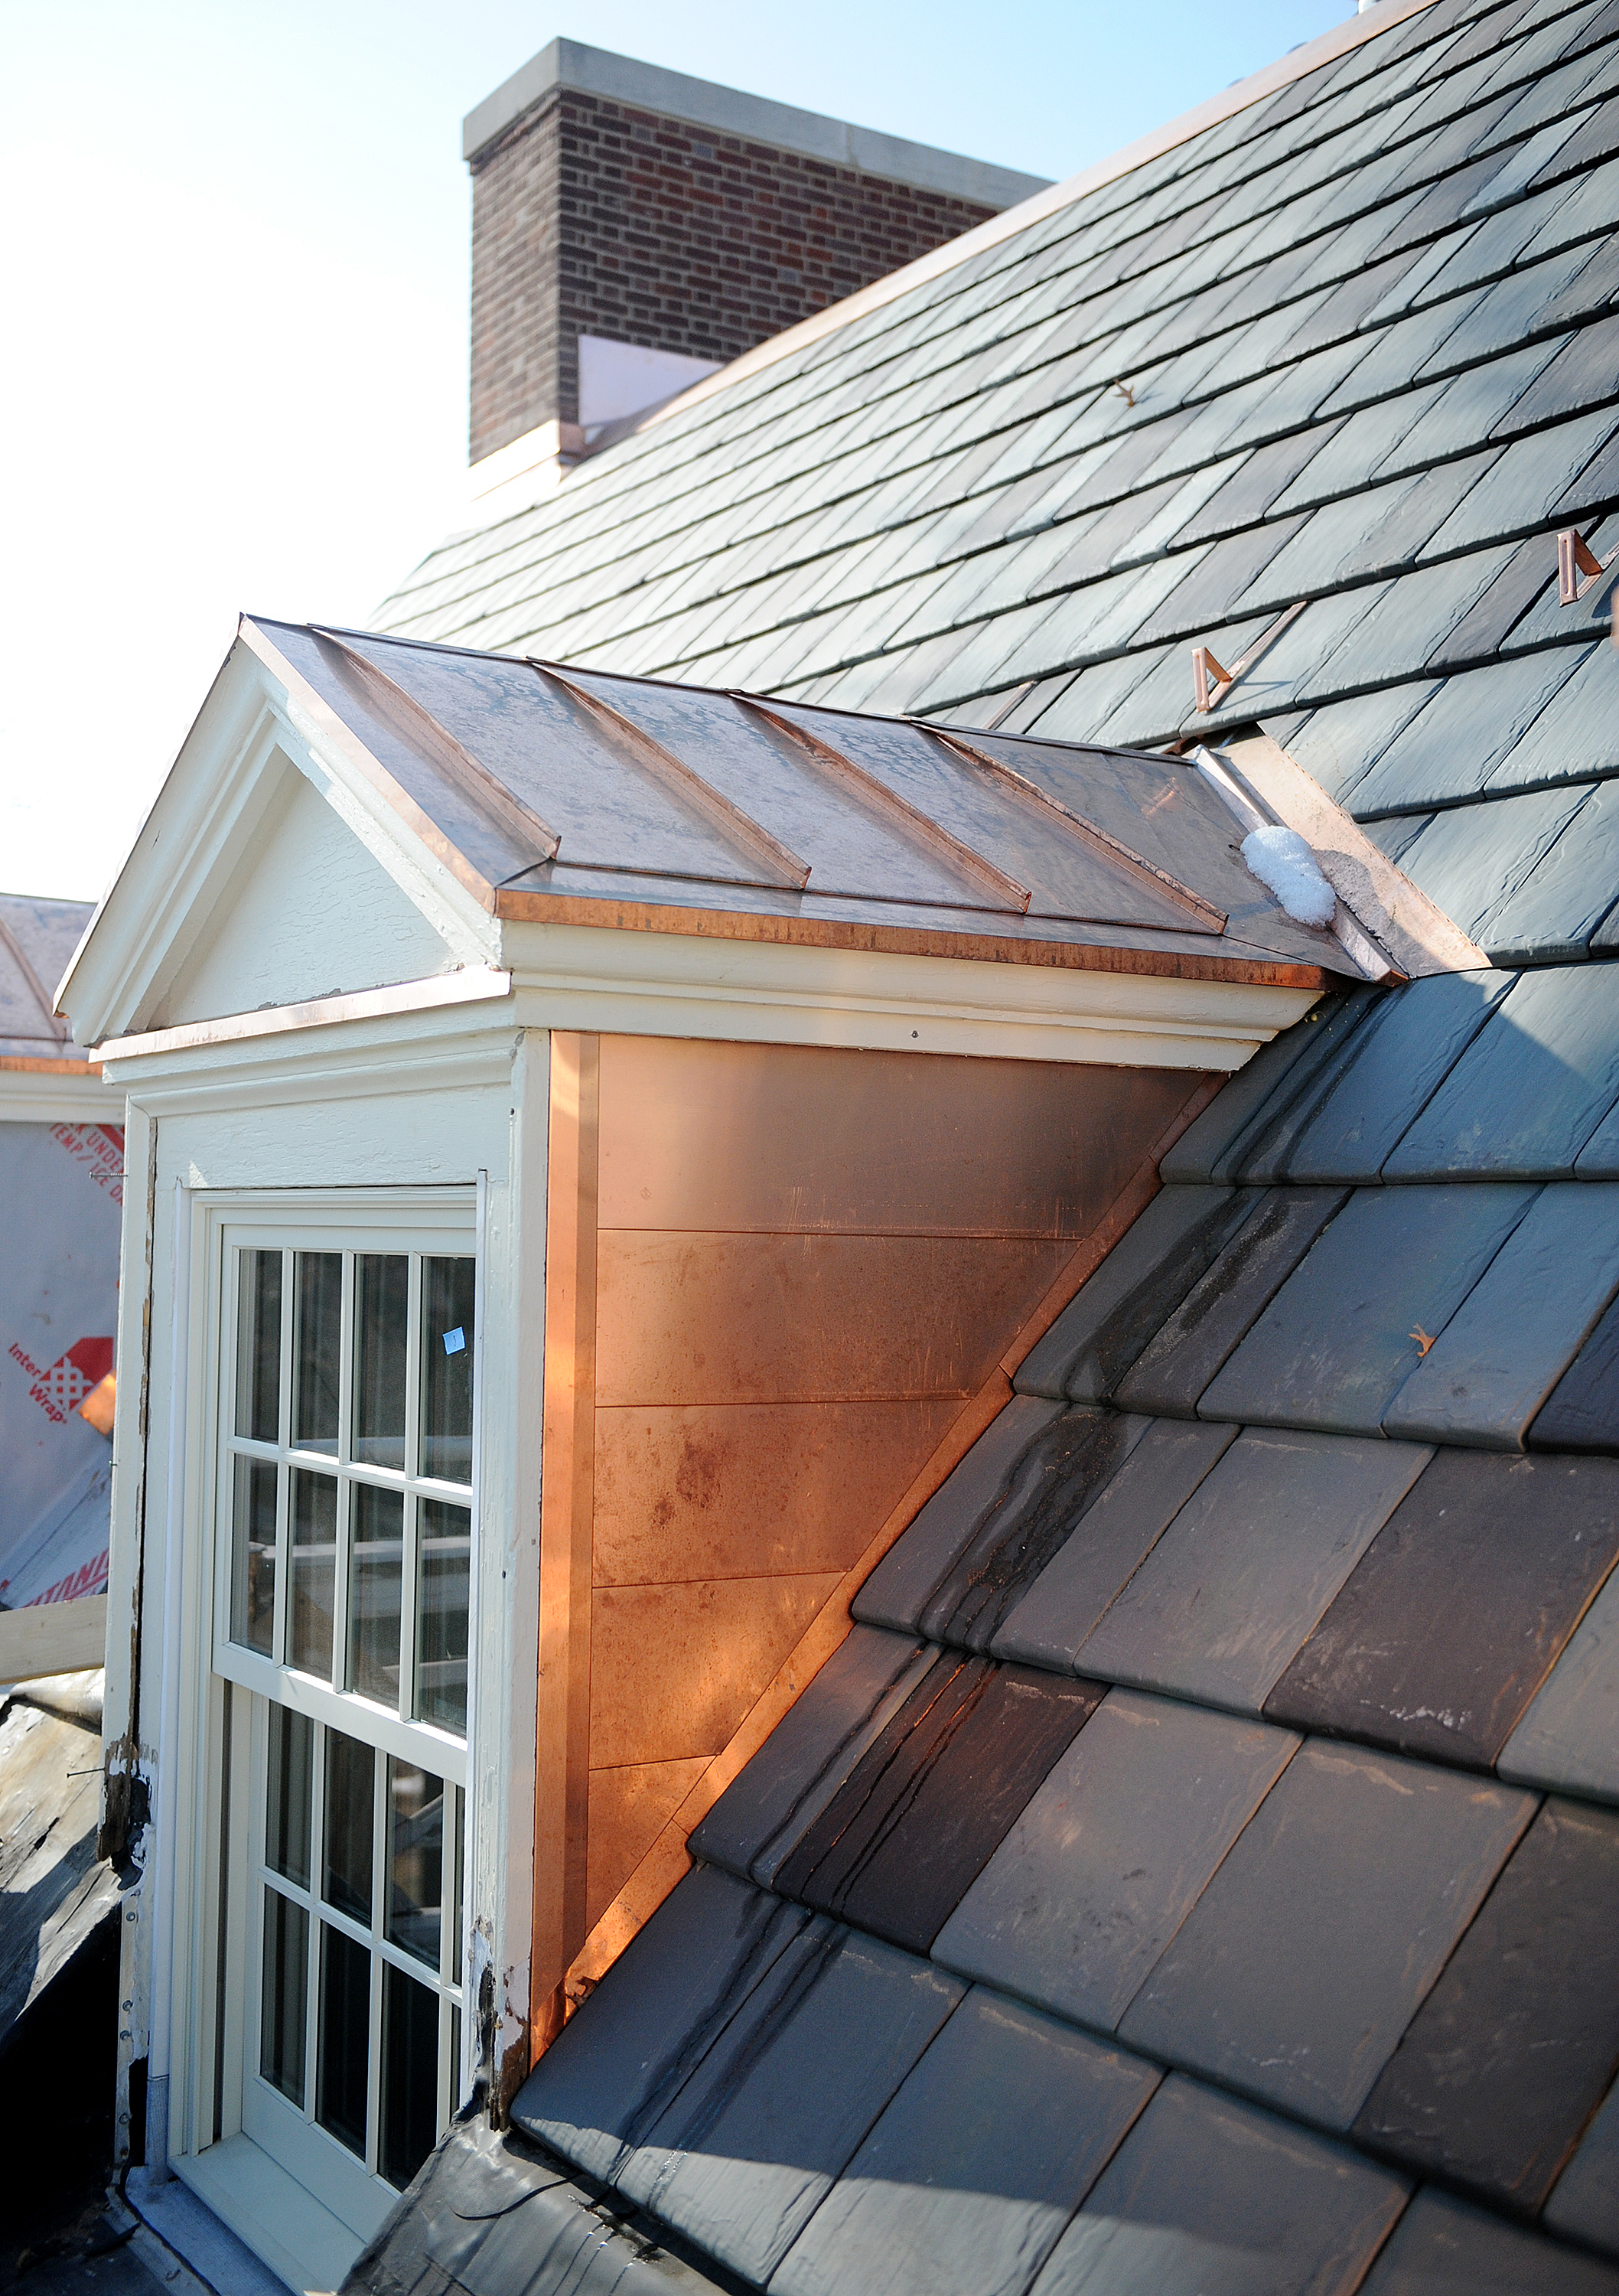 A new roof, utilizing simulated terra cotta slate shingles, was added to Hildreth-Mirza Hall at Bucknell University.